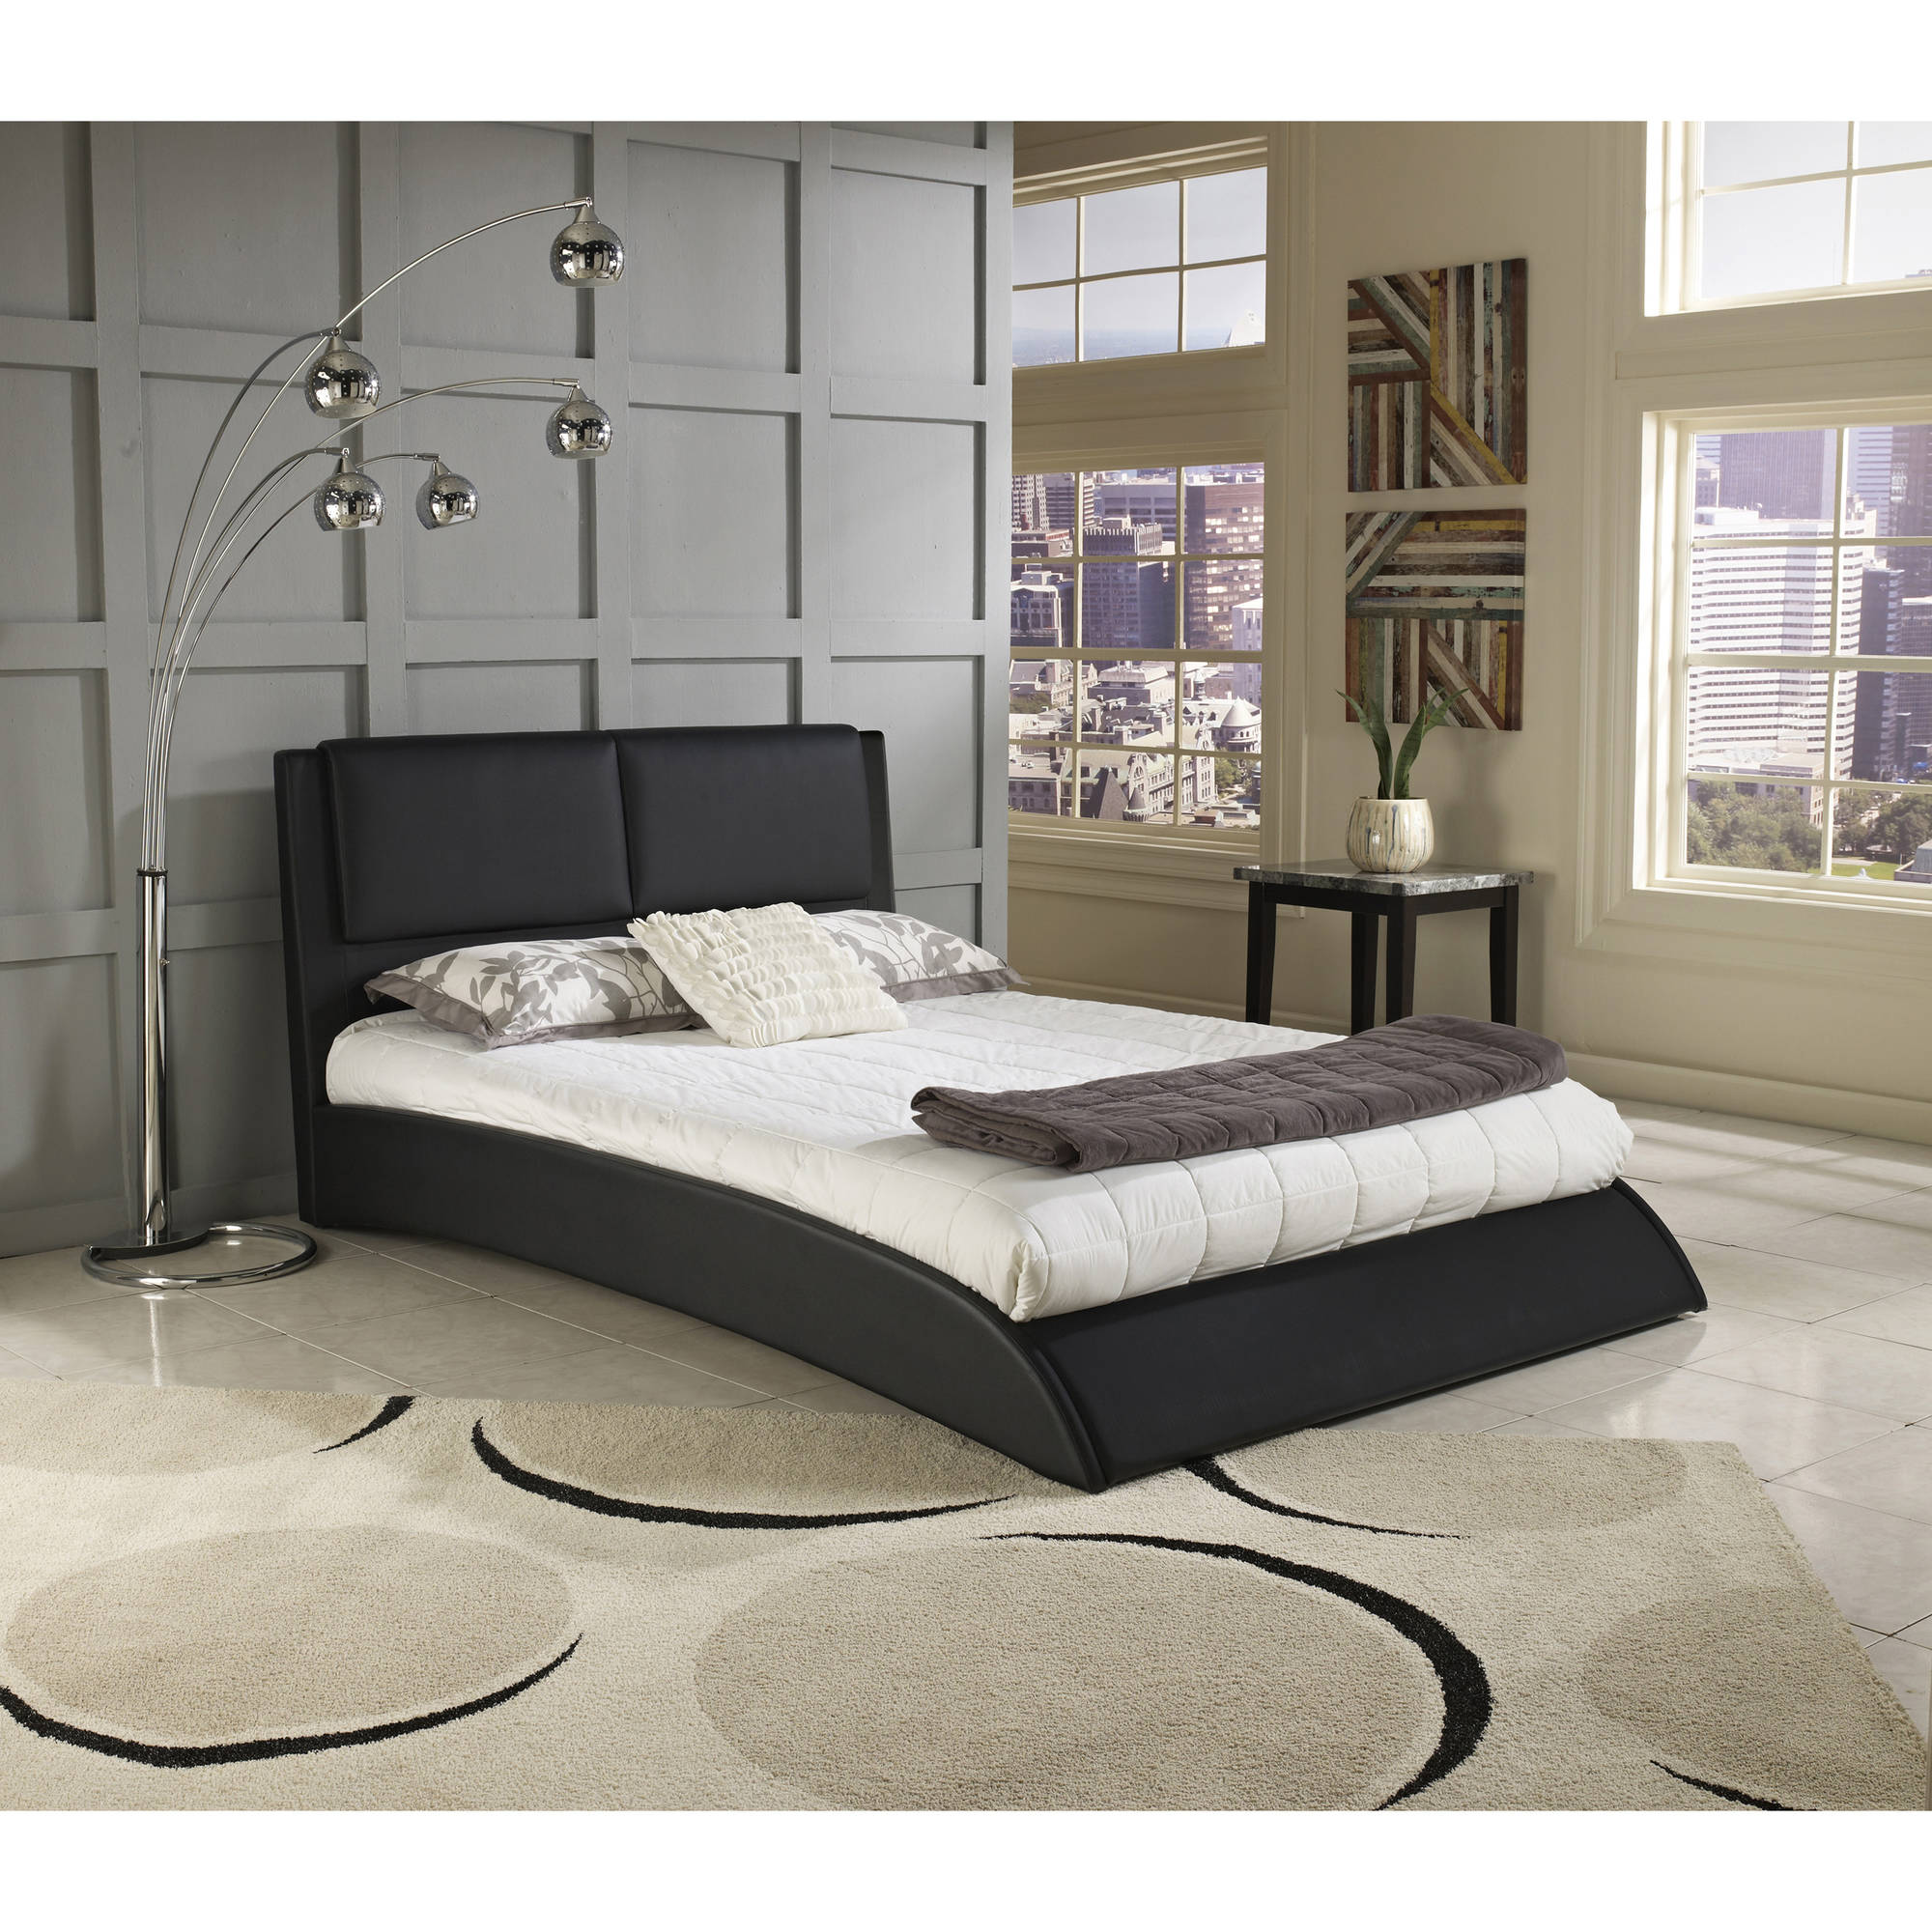 Premier Melbourne Upholstered Platform Bed Black, Multiple Sizes